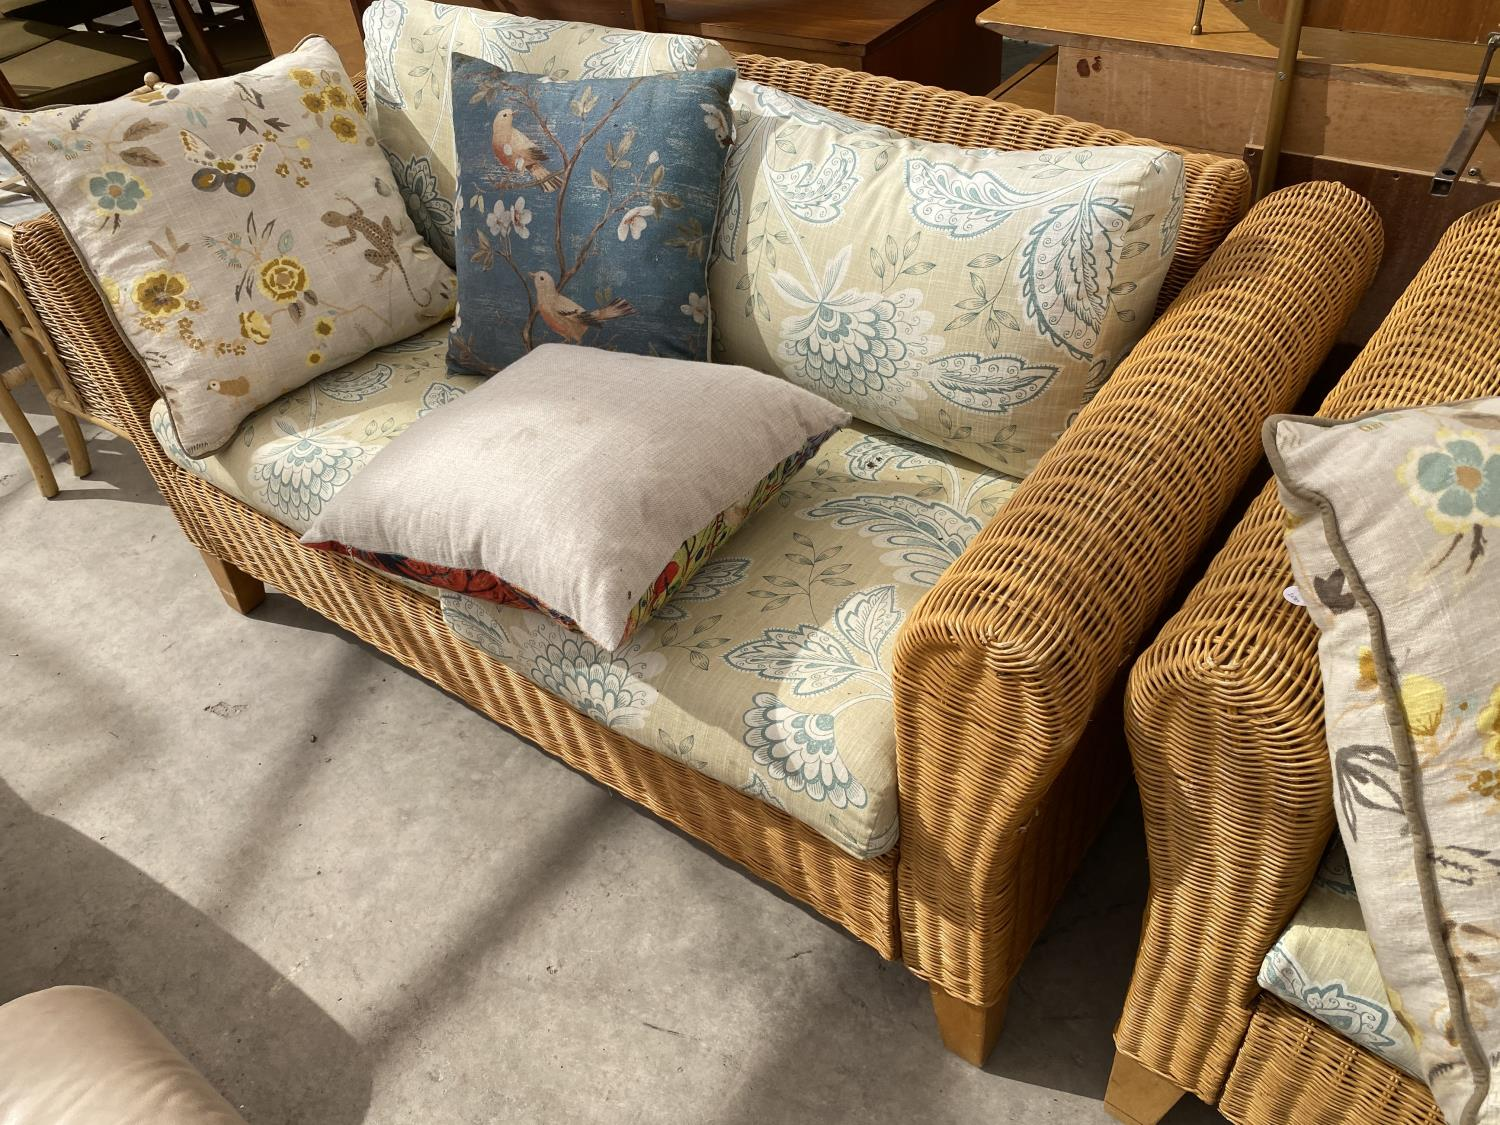 A MODERN WICKER CONSERVATORY SETTEE AND EASY CHAIR WITH FIVE LOOSE CUSHIONS - Image 3 of 4